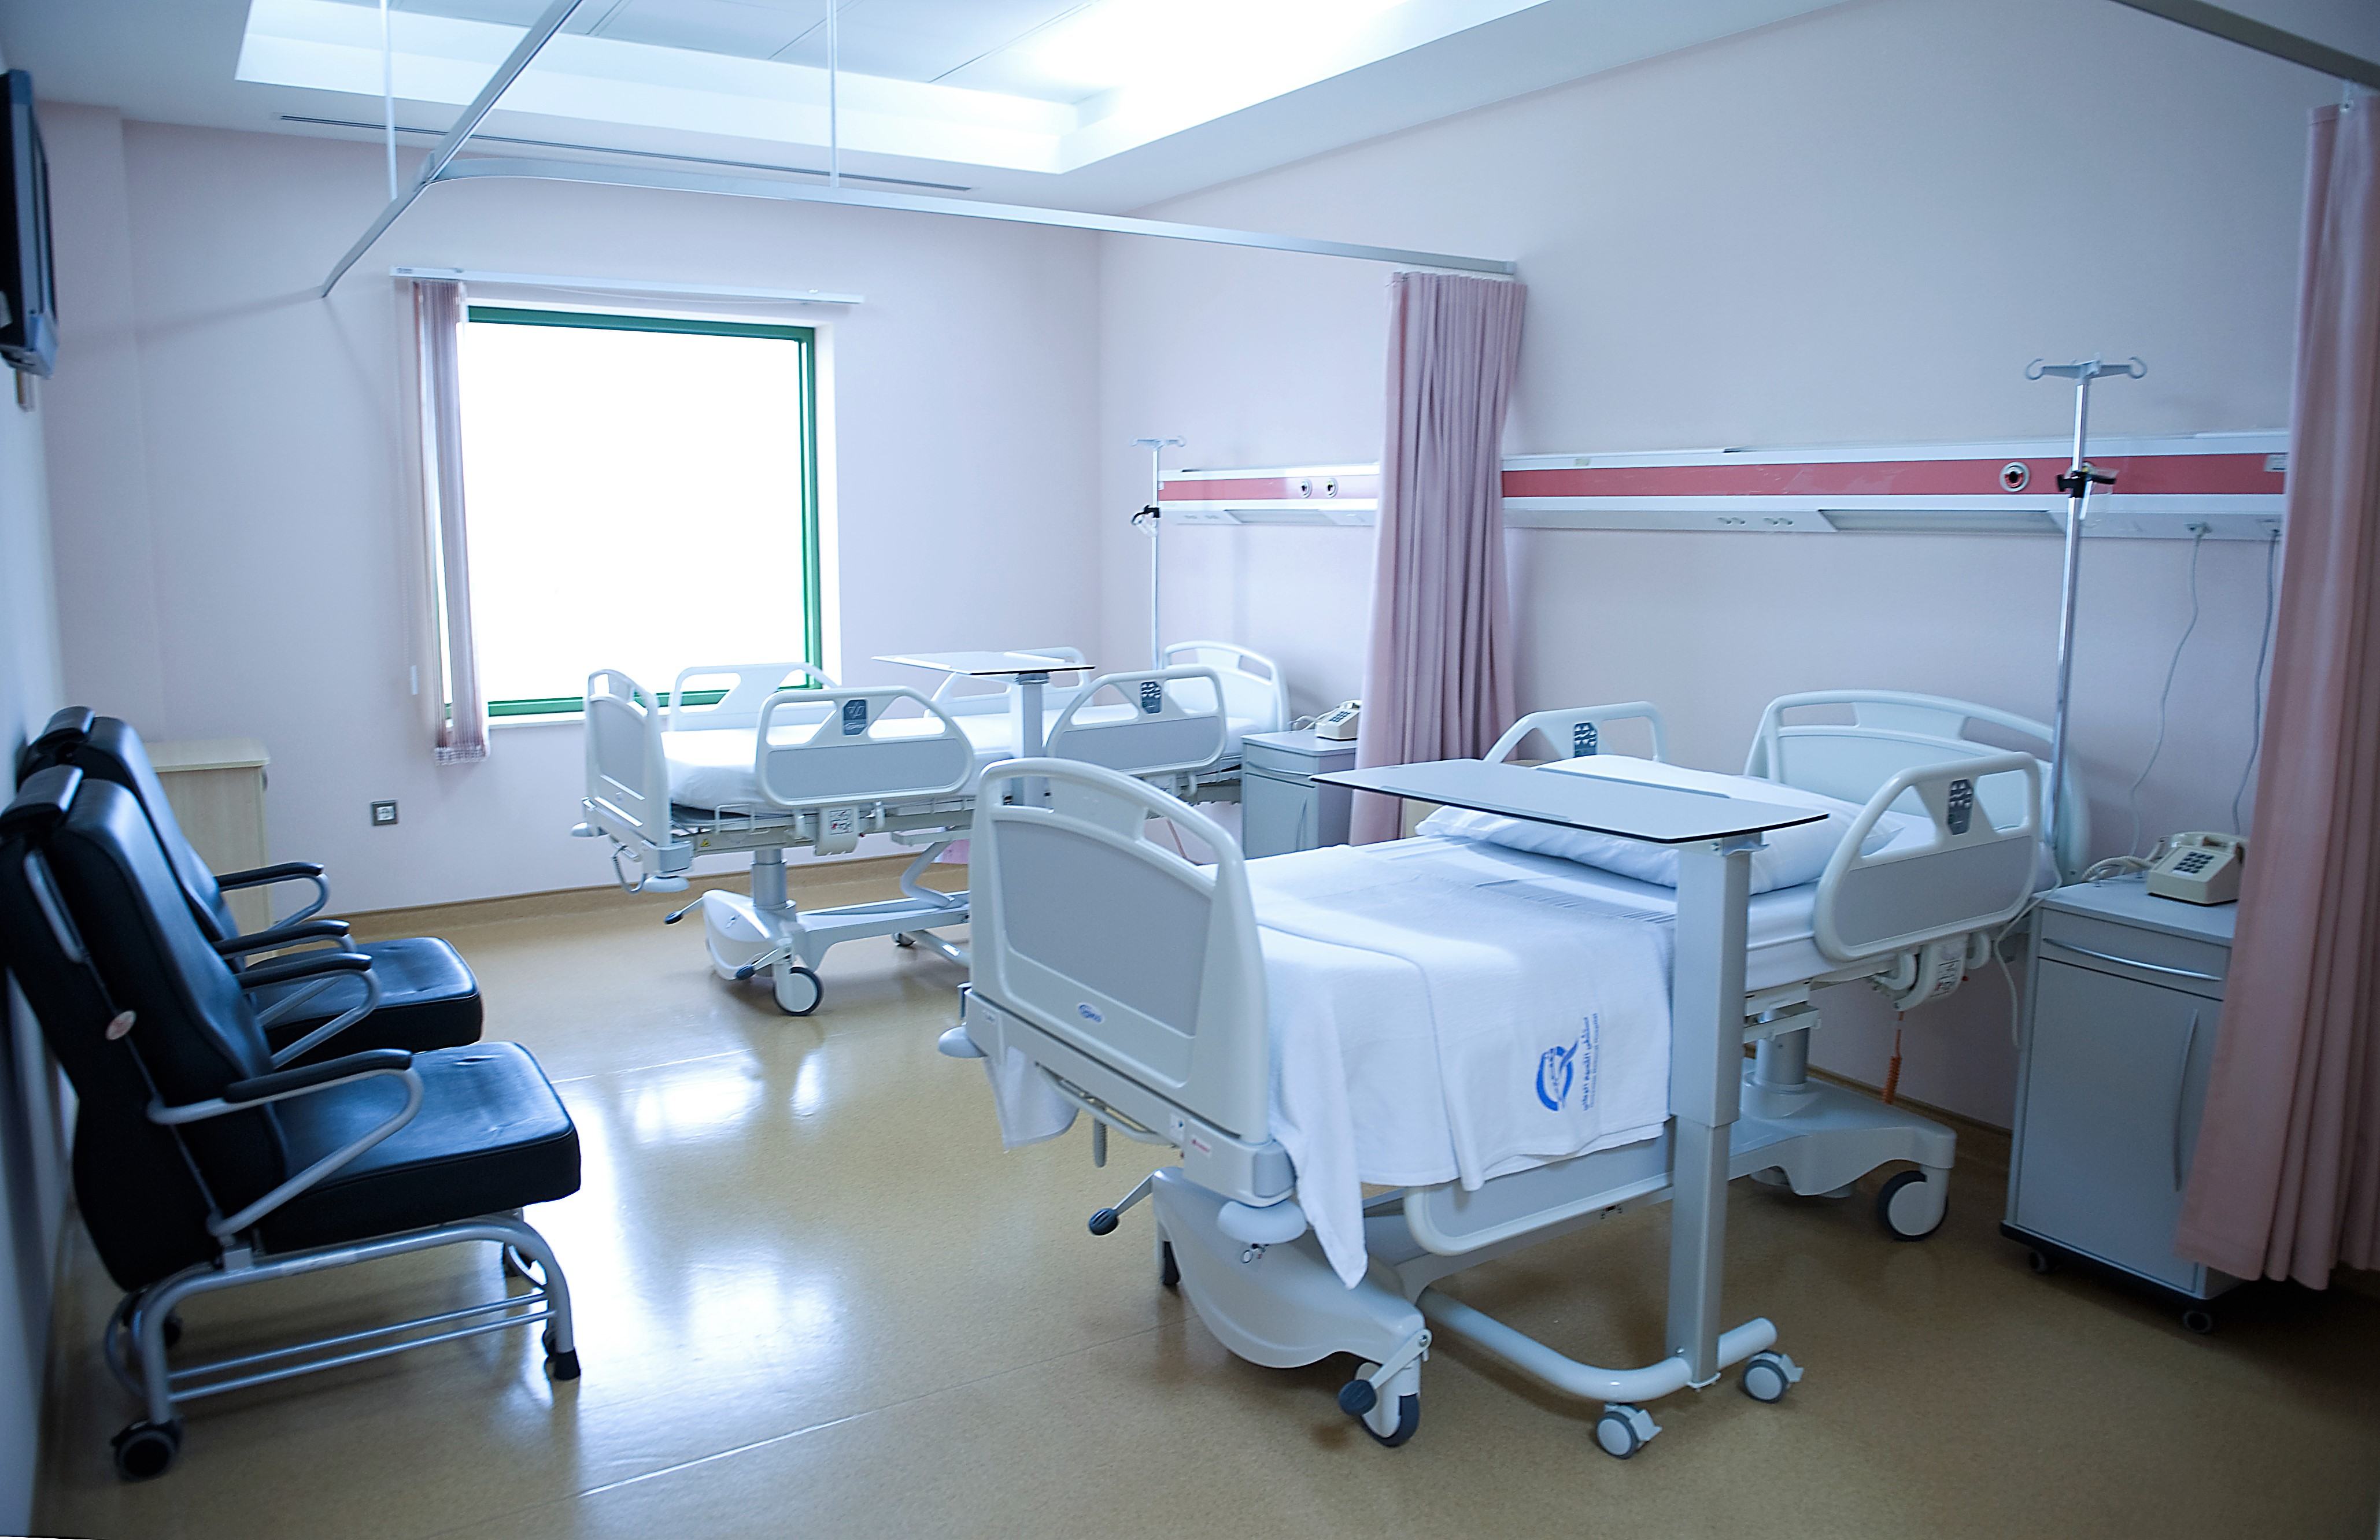 Inpatient shared rooms